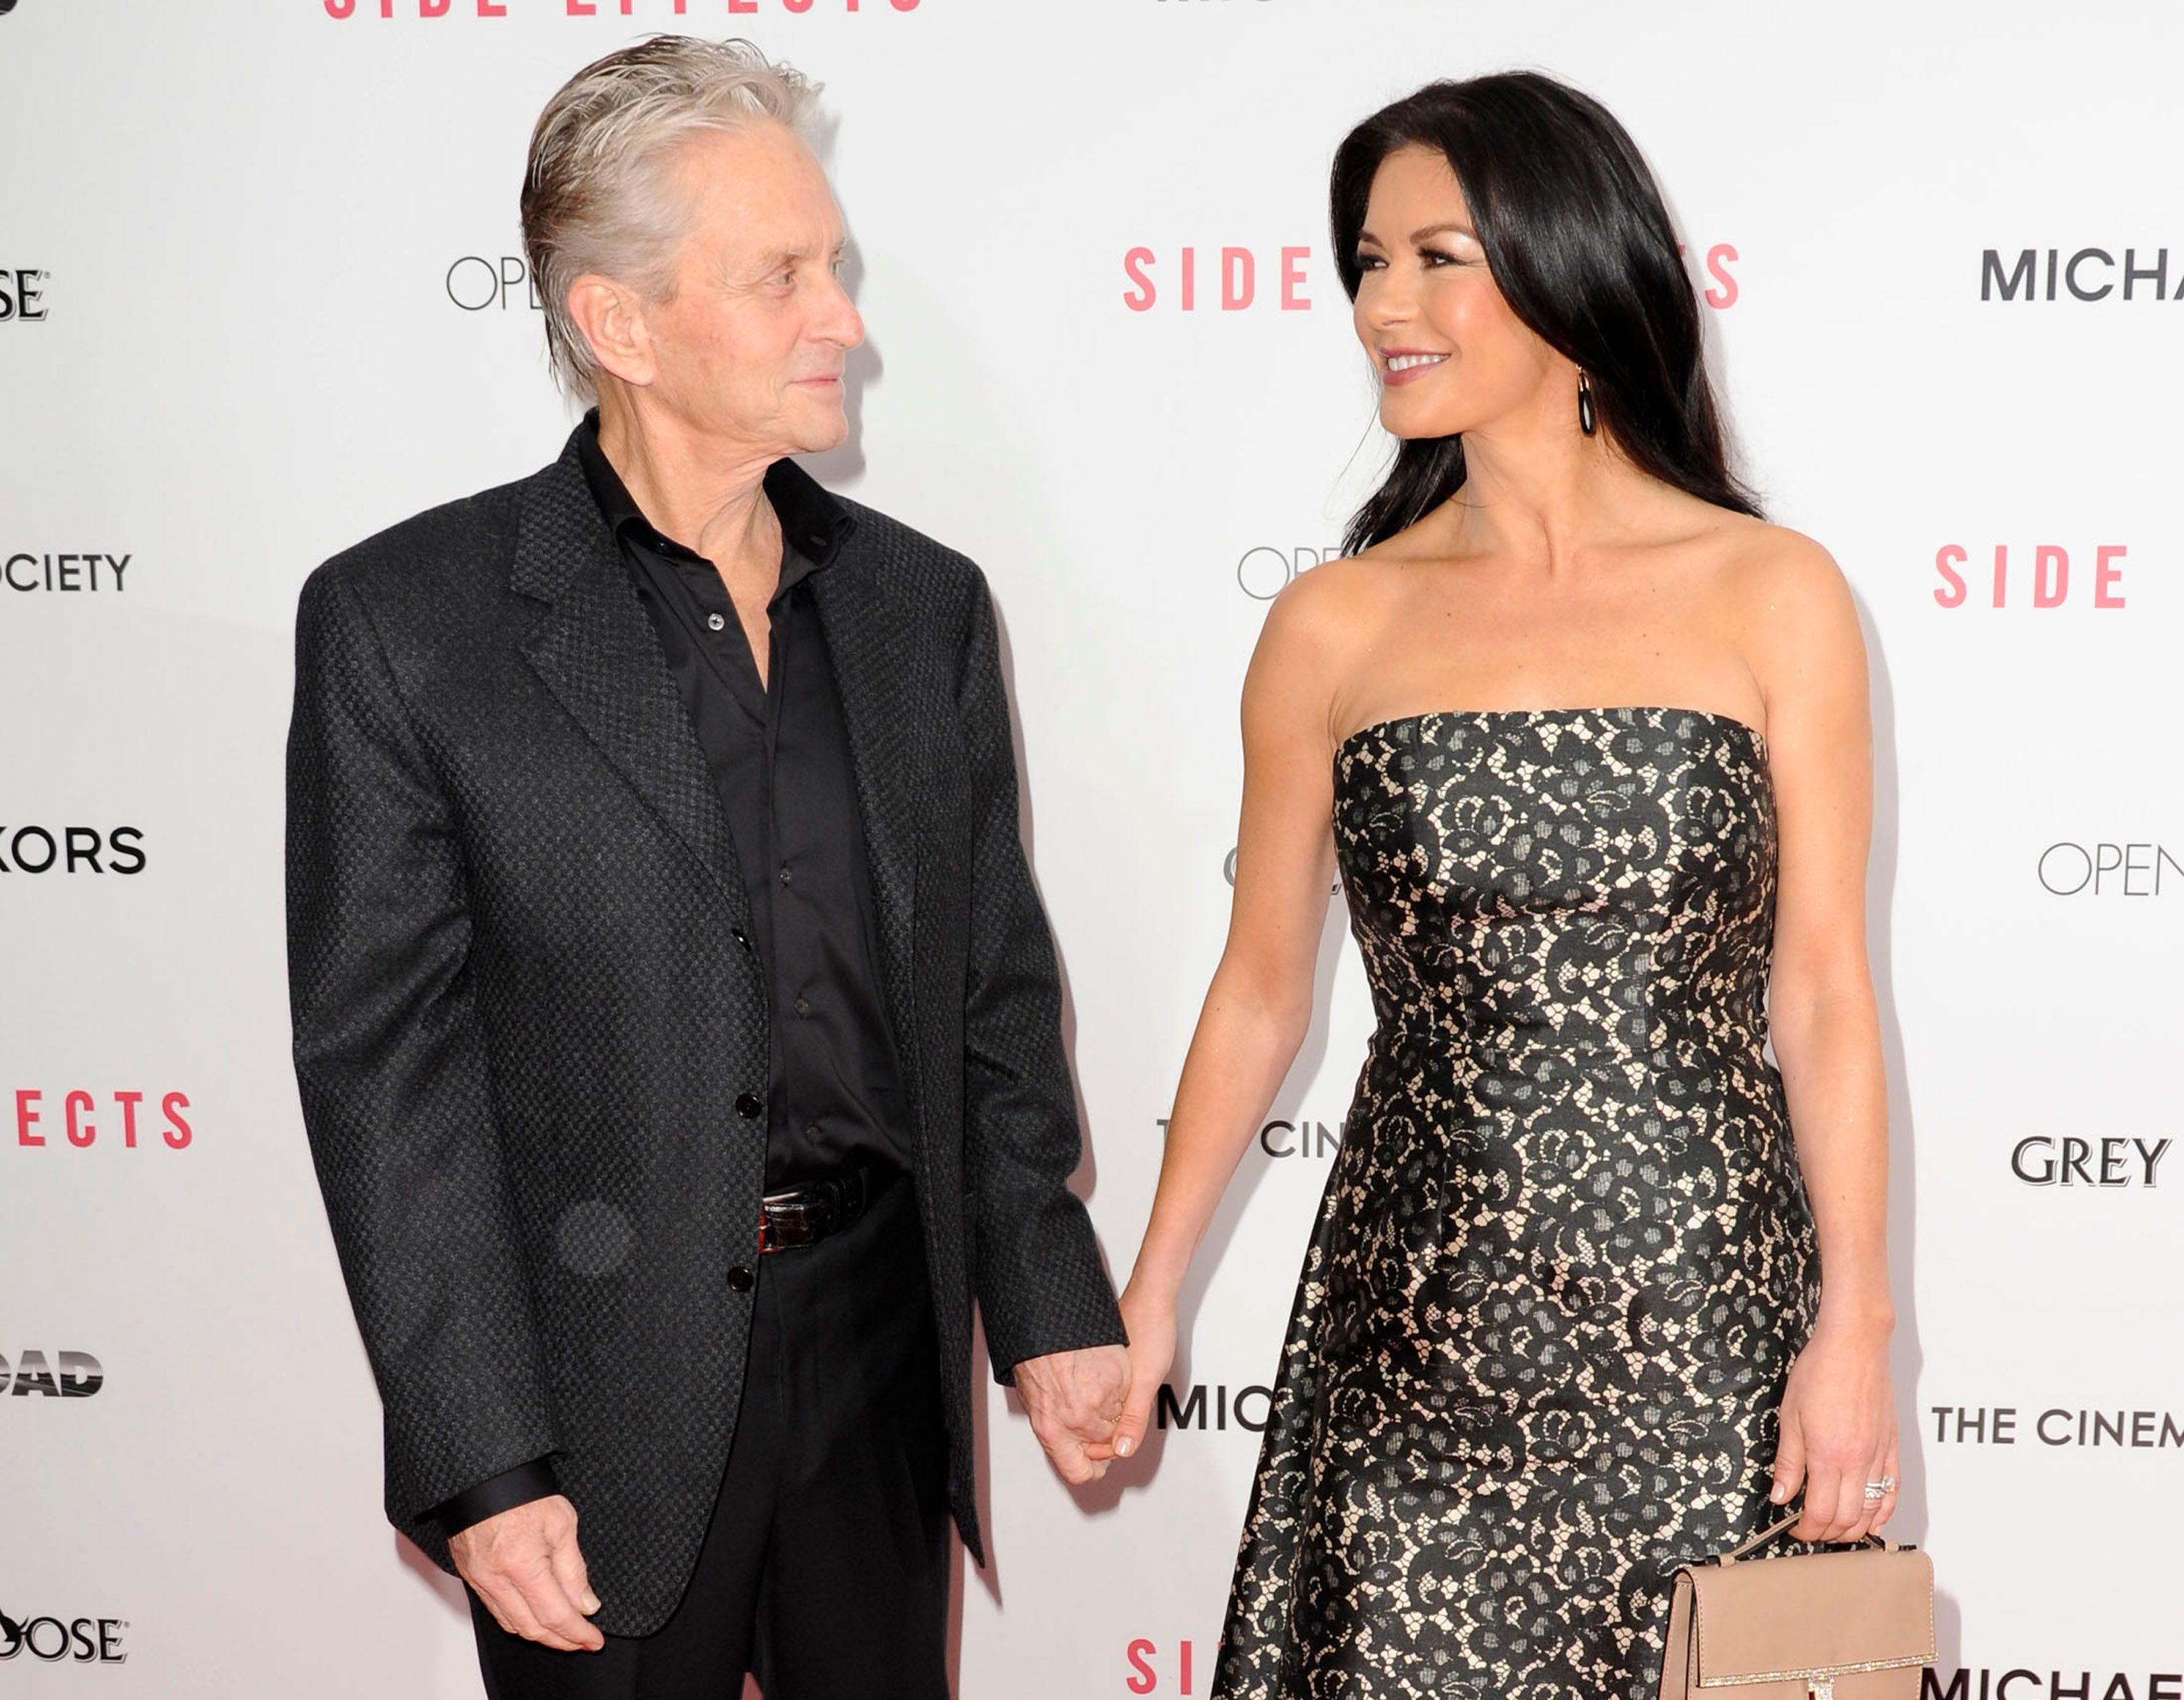 "Michael Douglas and Catherine Zeta-Jones during the premiere of ""Side Effects"" at AMC Lincoln Square Theater on January 31, 2013 in New York City. 